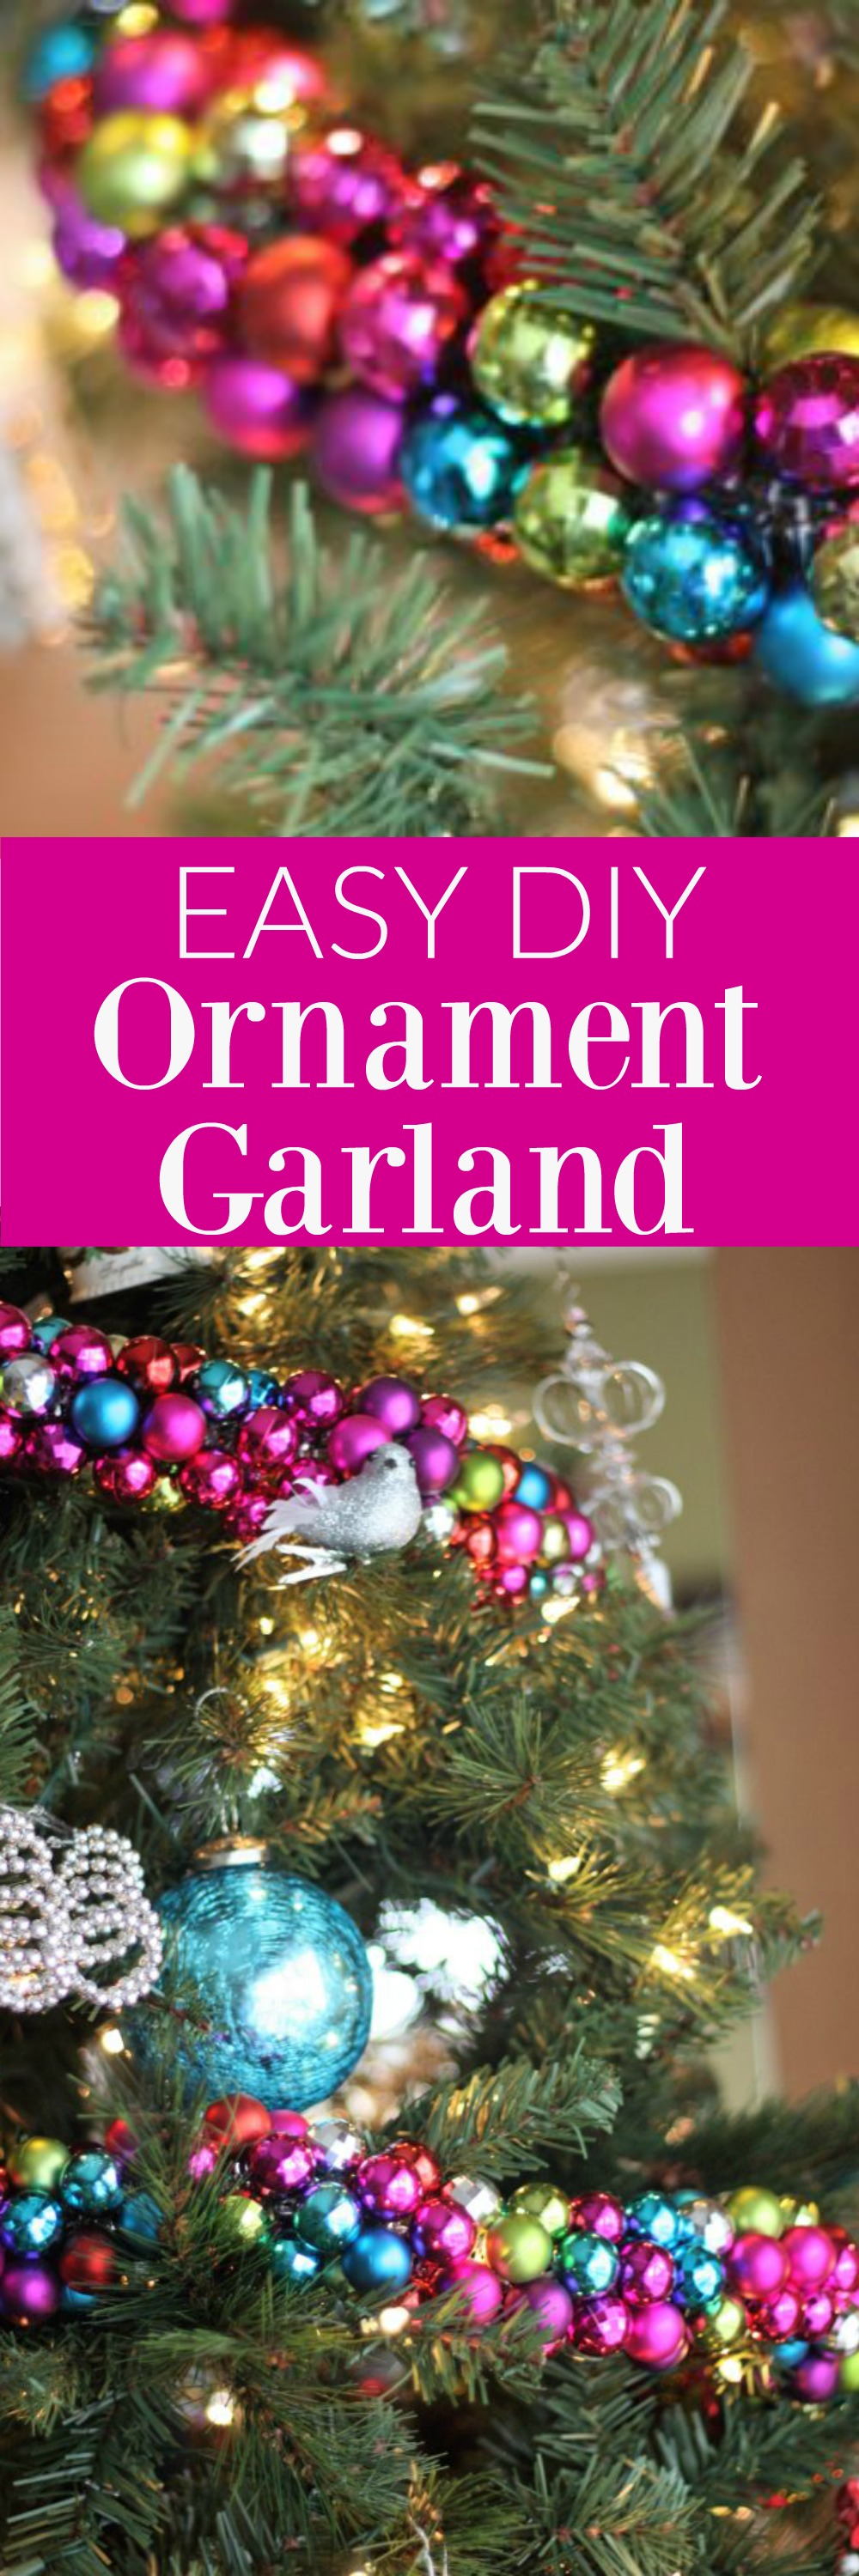 Easy DIY Christmas Ornament Garland